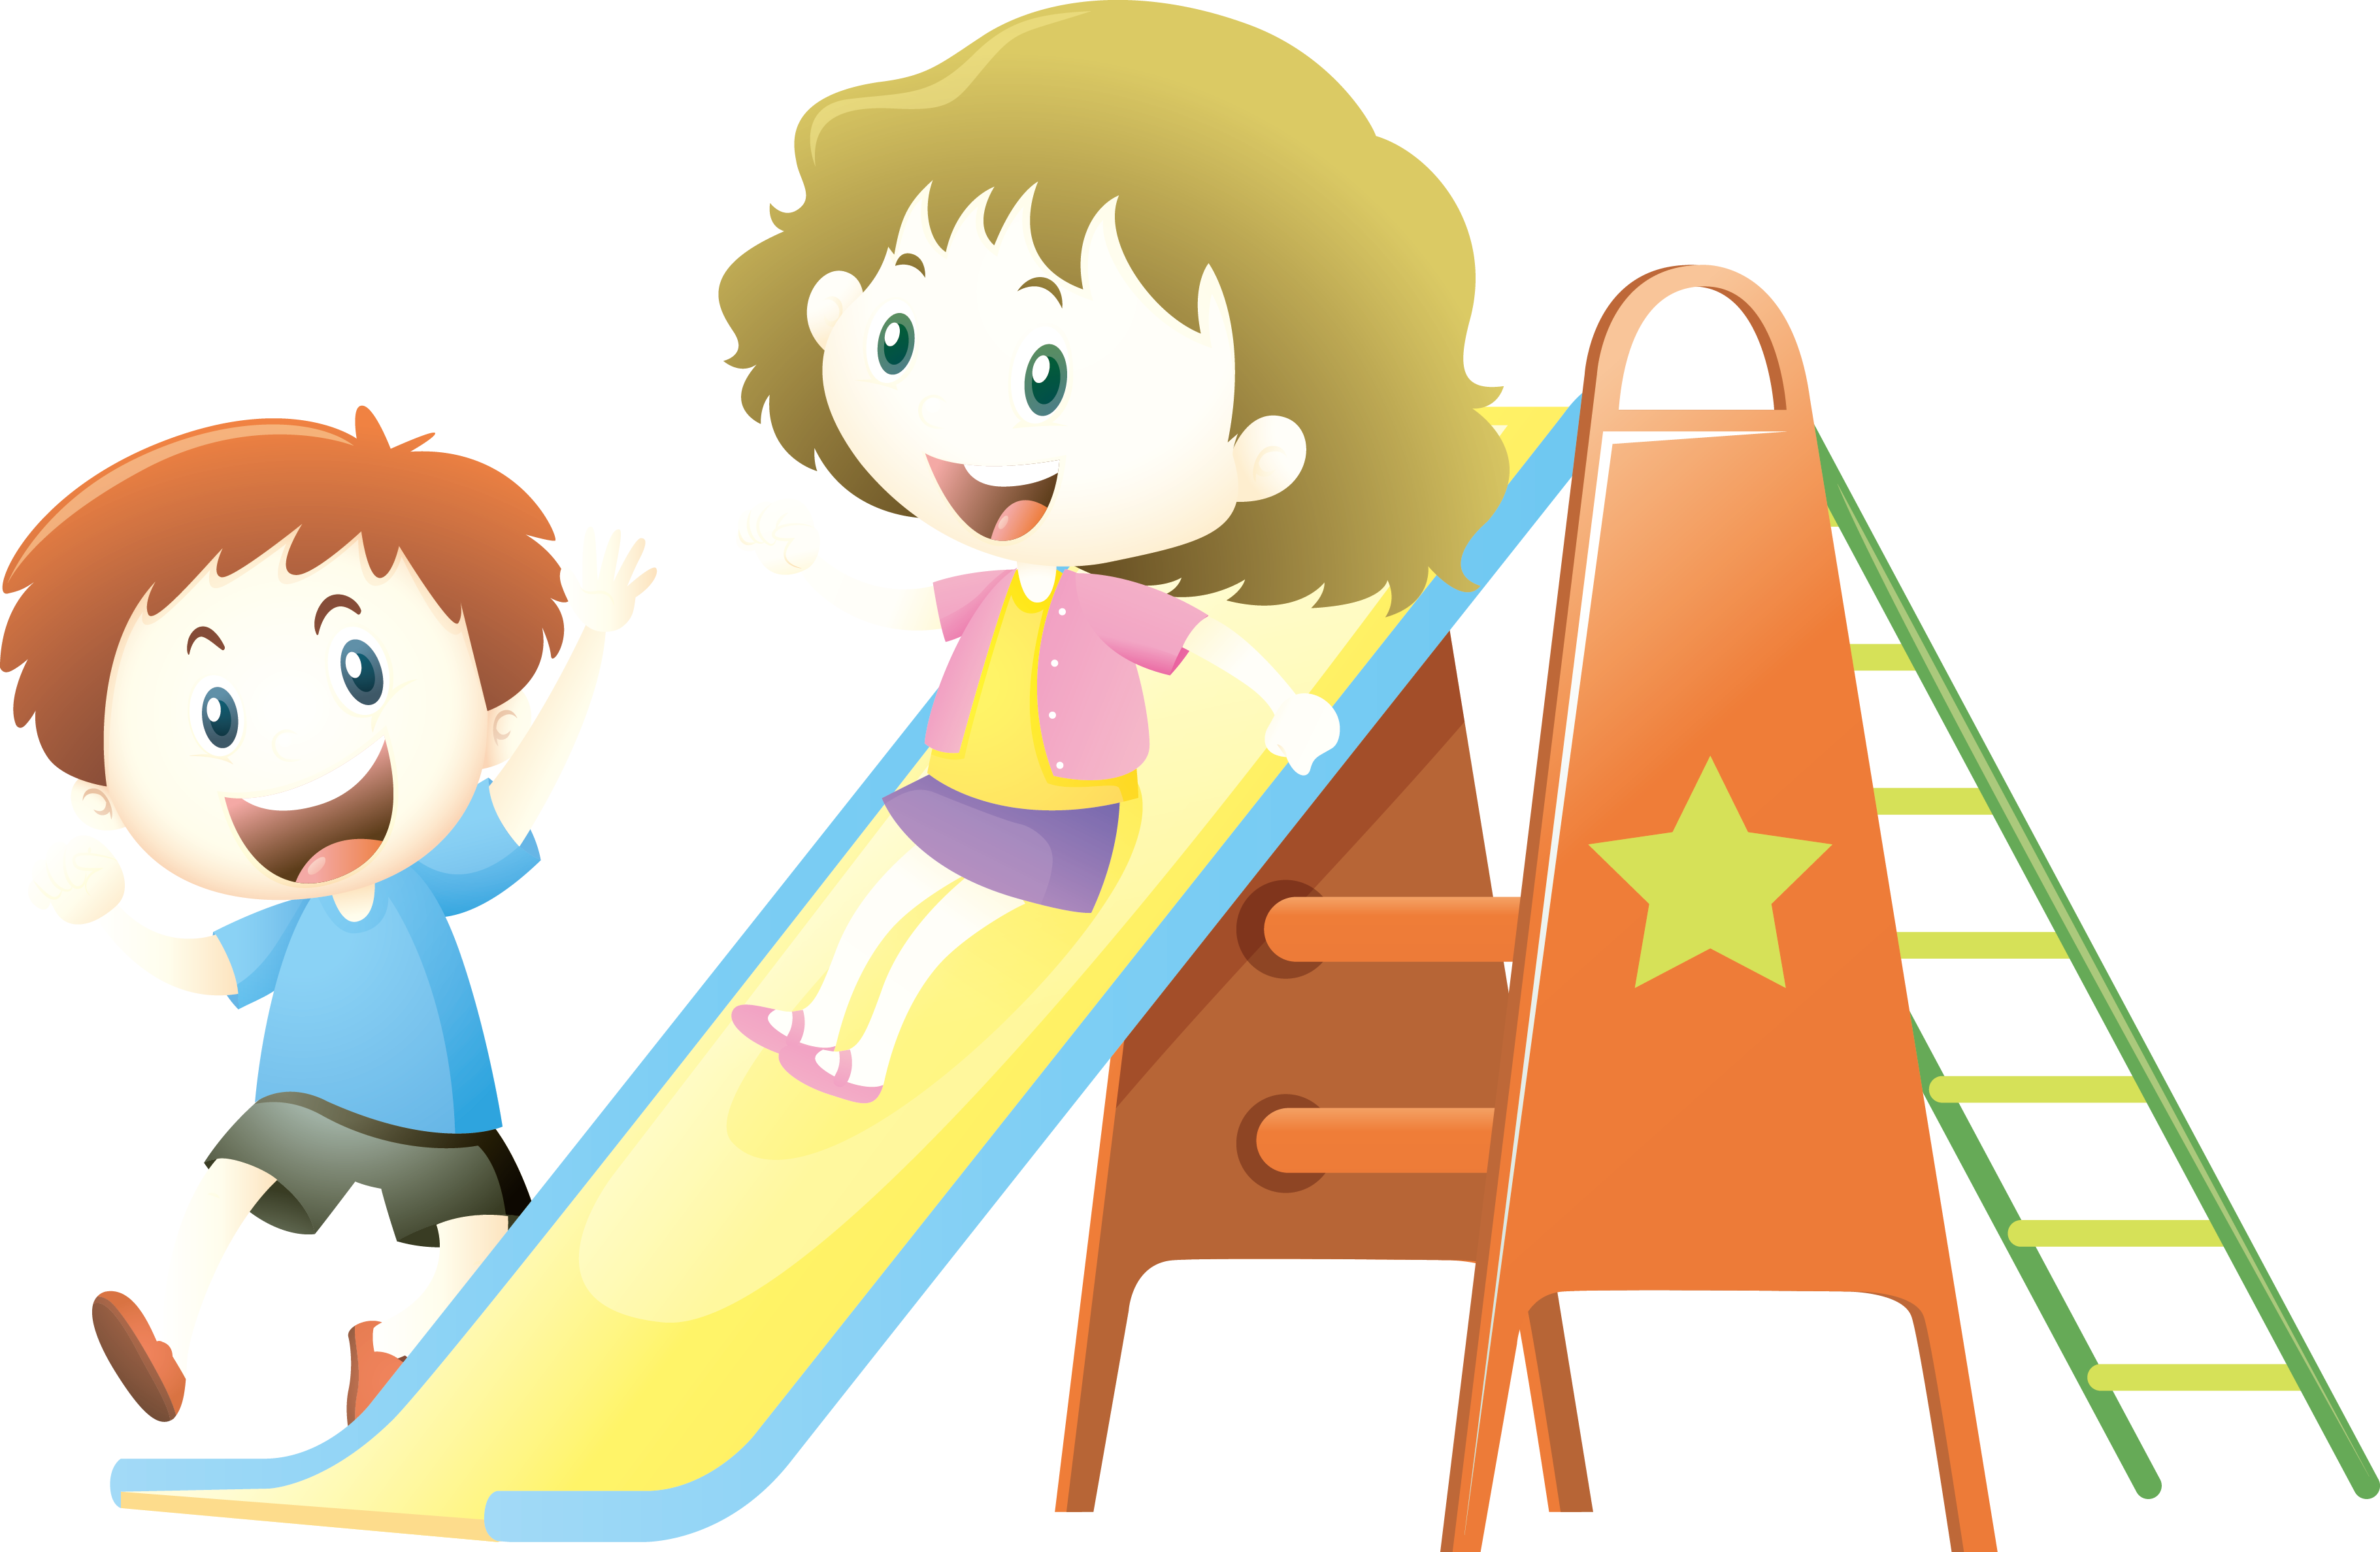 Child slide illustration kids. Nature clipart playground graphic stock